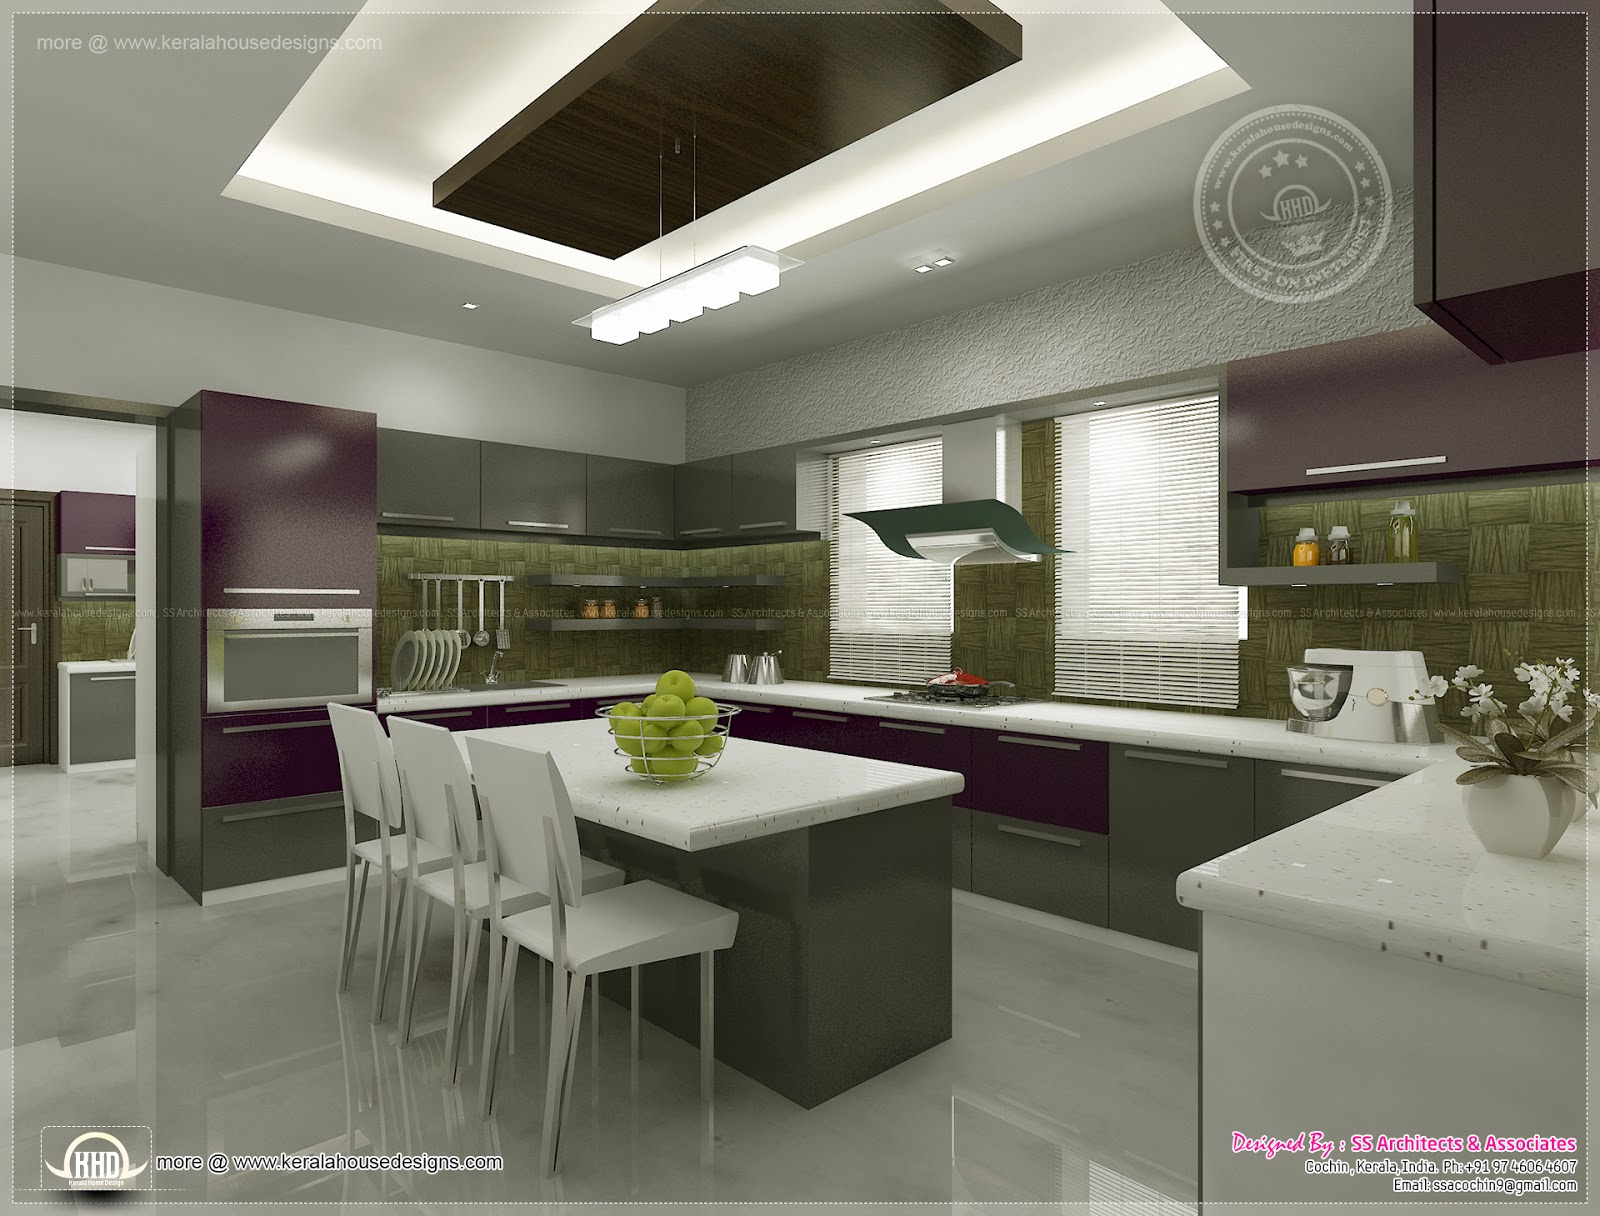 Kitchen interior views by ss architects cochin kerala for Home design kitchen decor